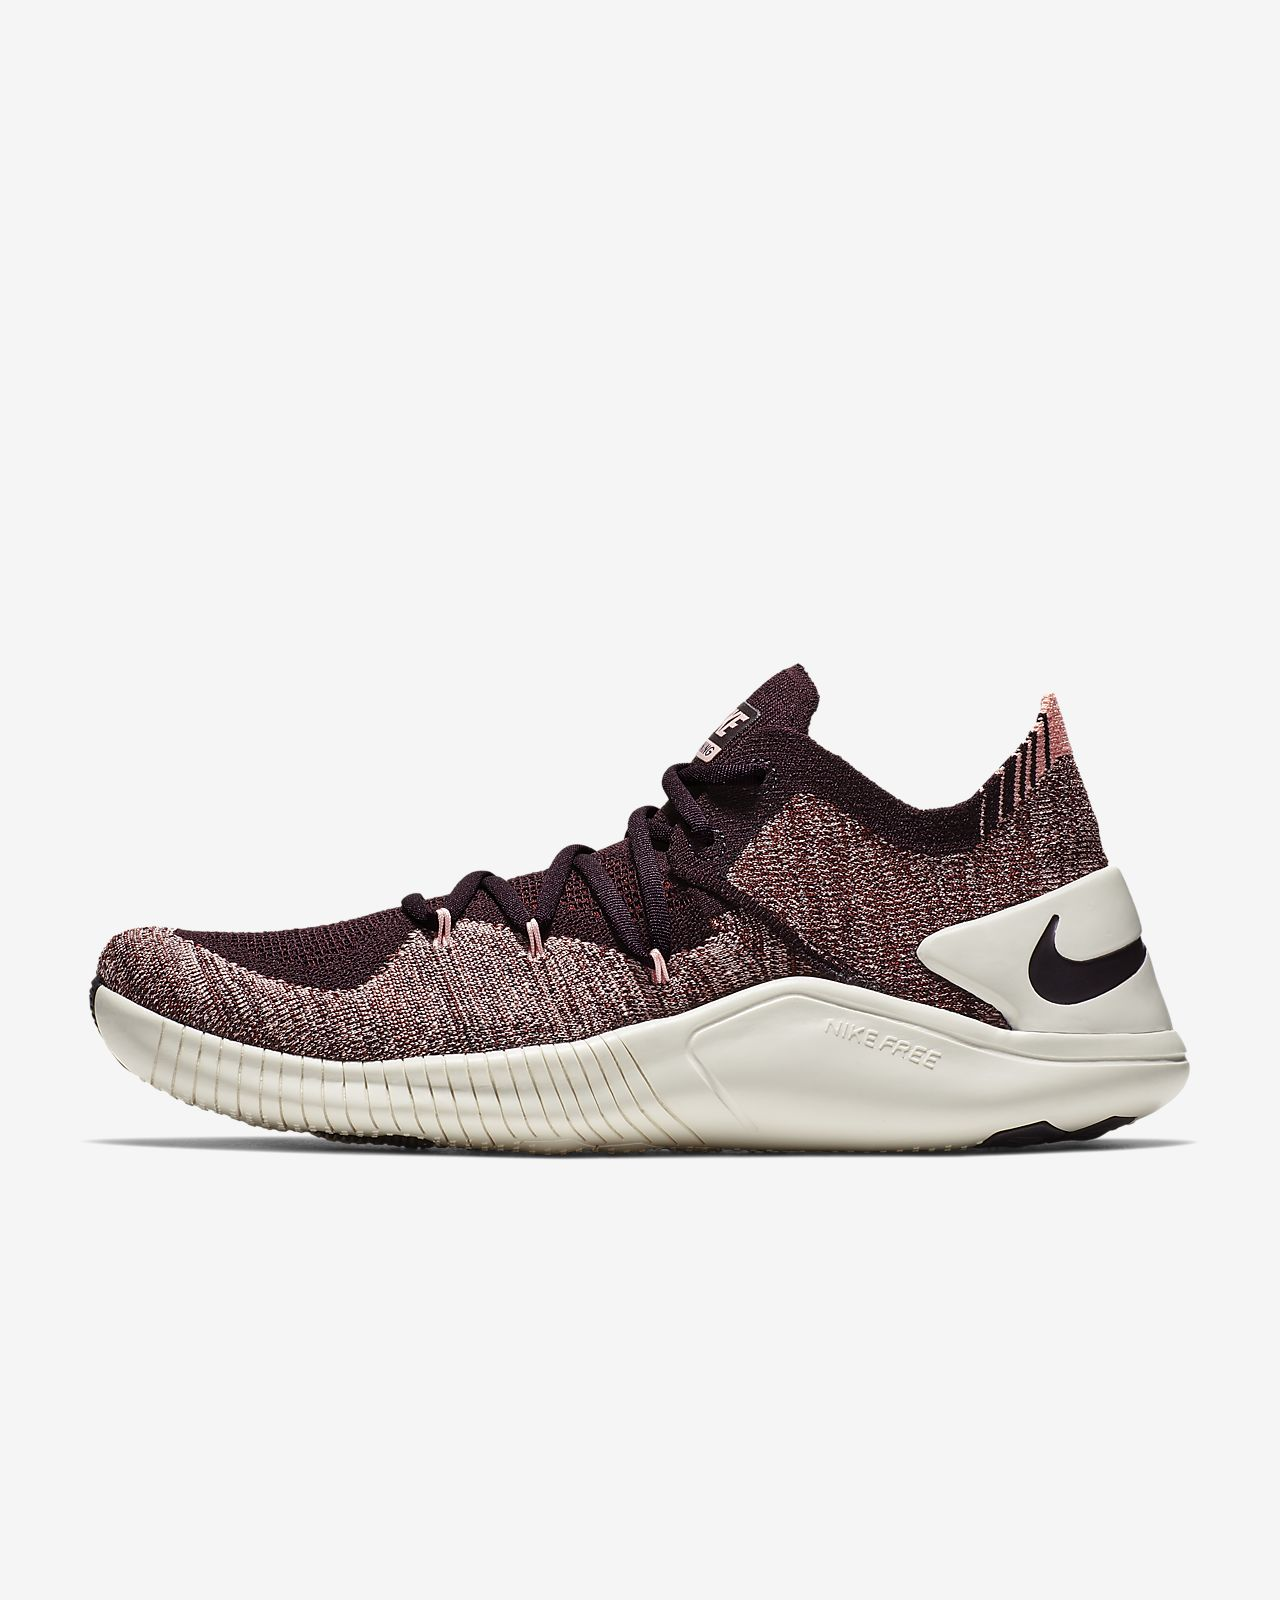 newest a9845 c44e7 ... promo code for nike free tr flyknit 3 womens gym hiit cross training  shoe 16291 54977